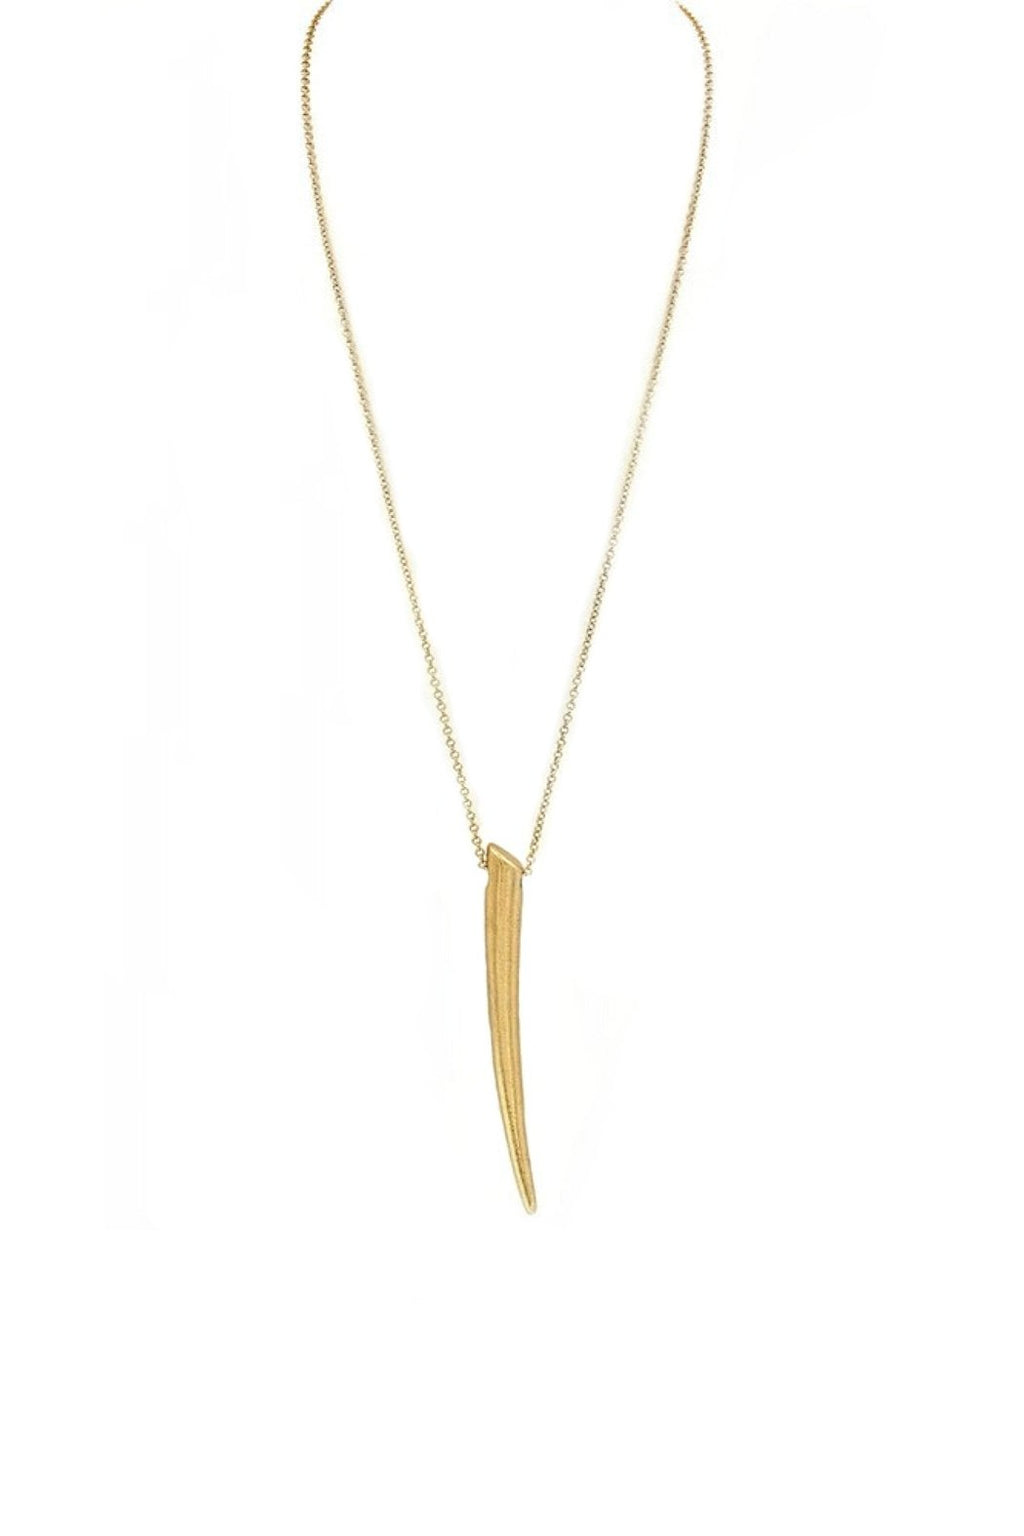 Hammered Metal Horn Pendent Necklace-Article & Thread Boutique